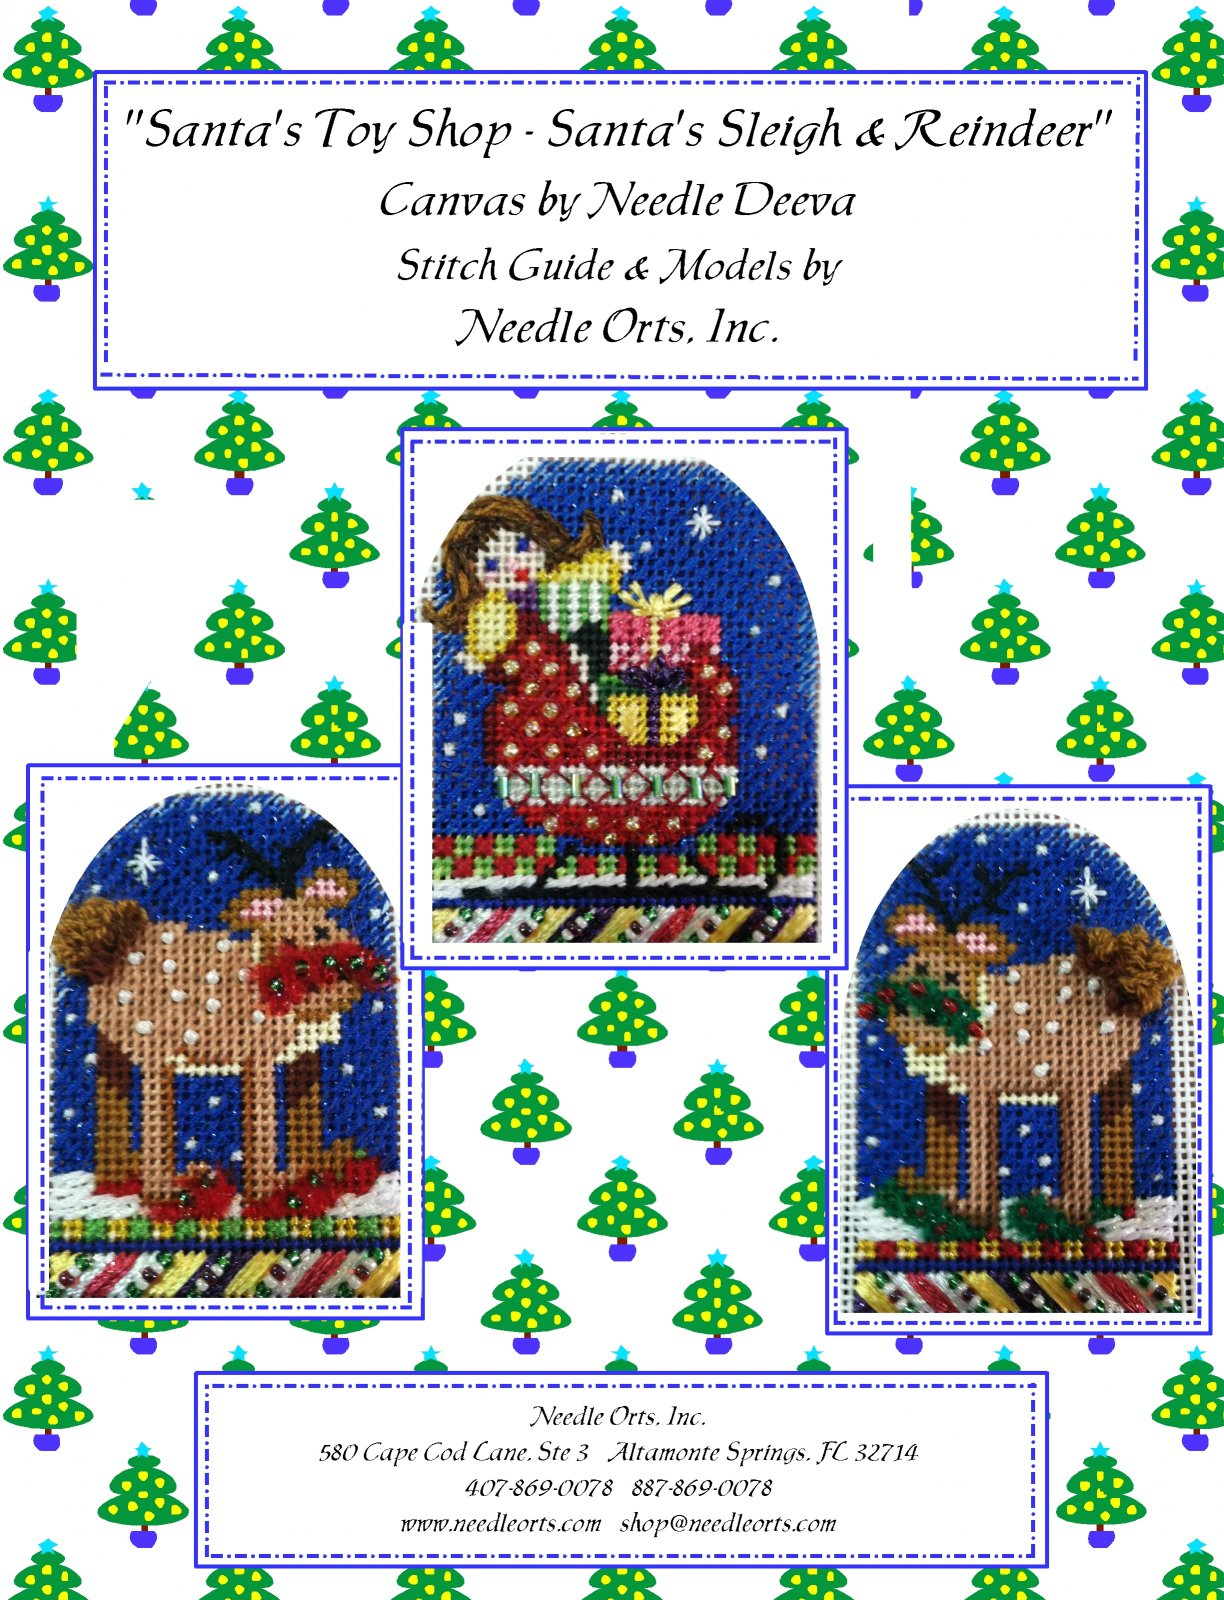 Stitch Guide - Santa's Toy Shop:  The Reindeer